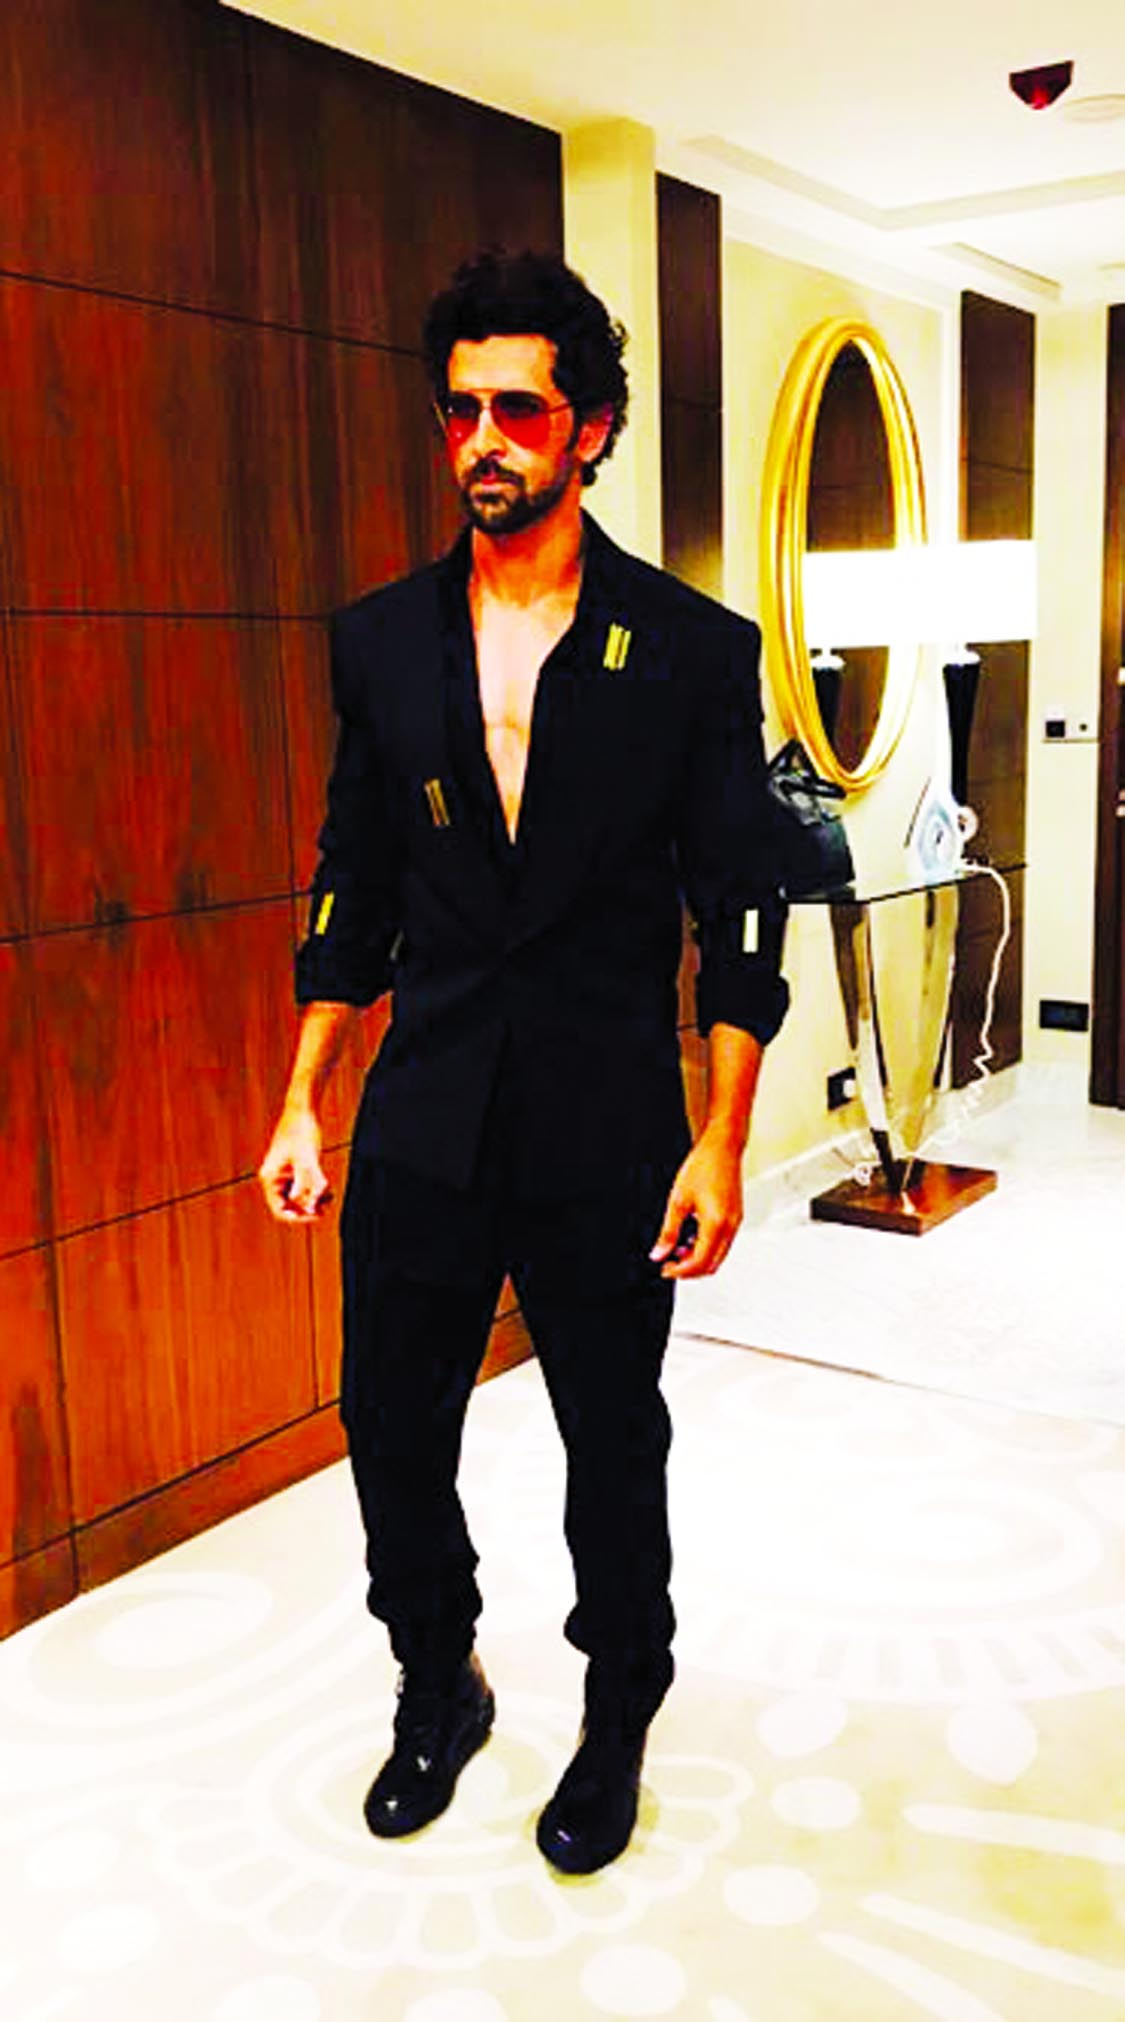 Hrithik Roshan at his fashionable best on the ramp for designer